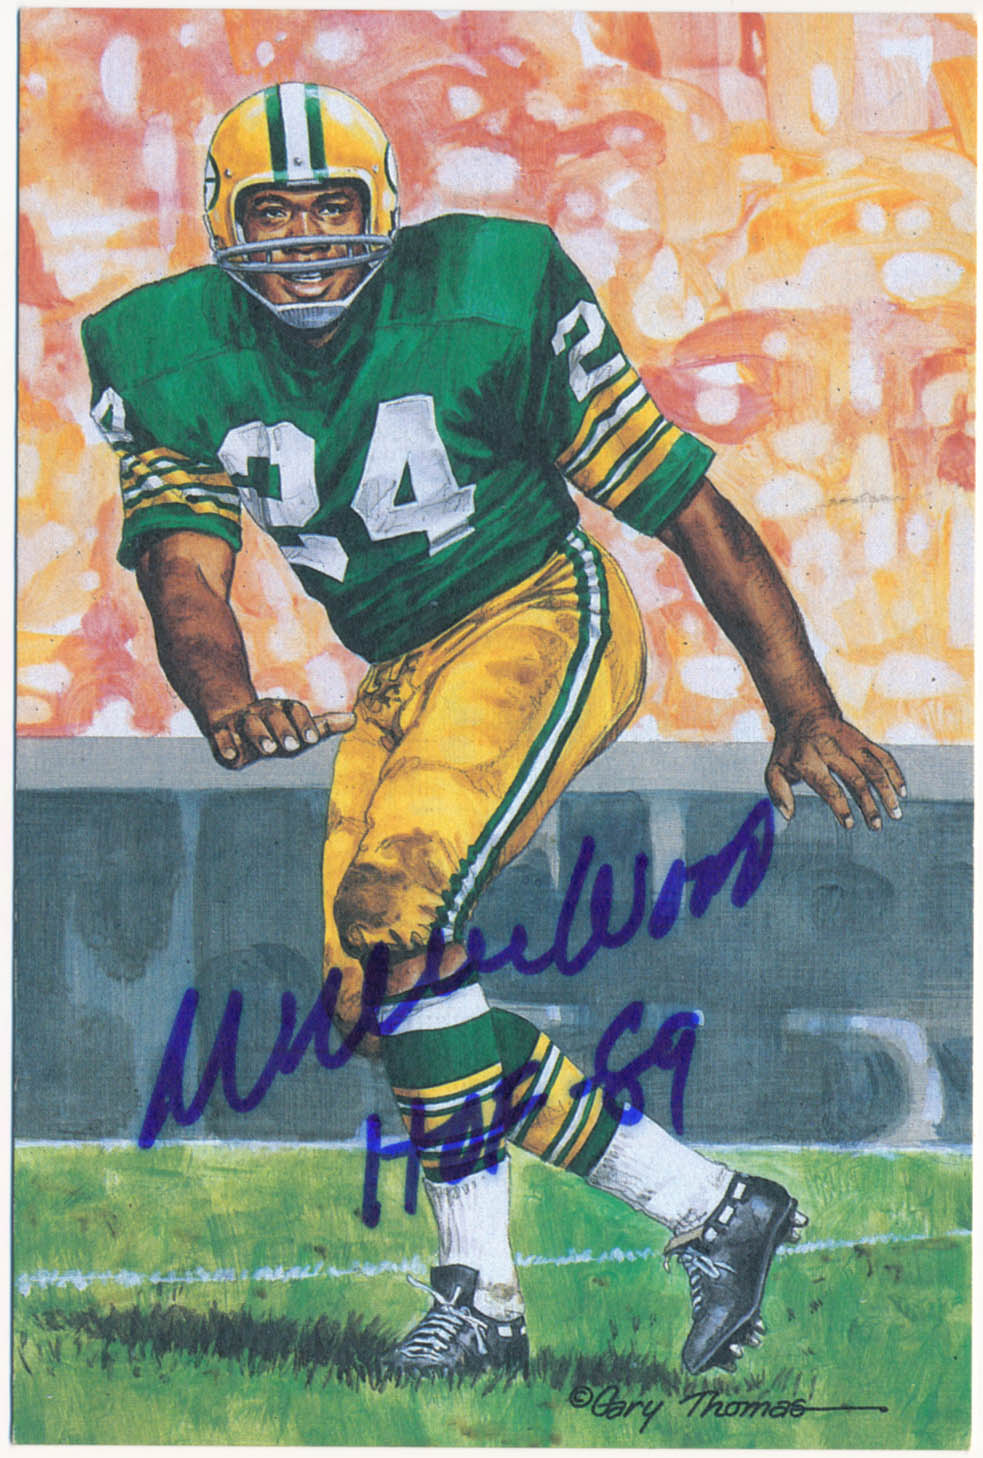 Lot #1078  Goal Line  Wood, Willie Cond: 9.5